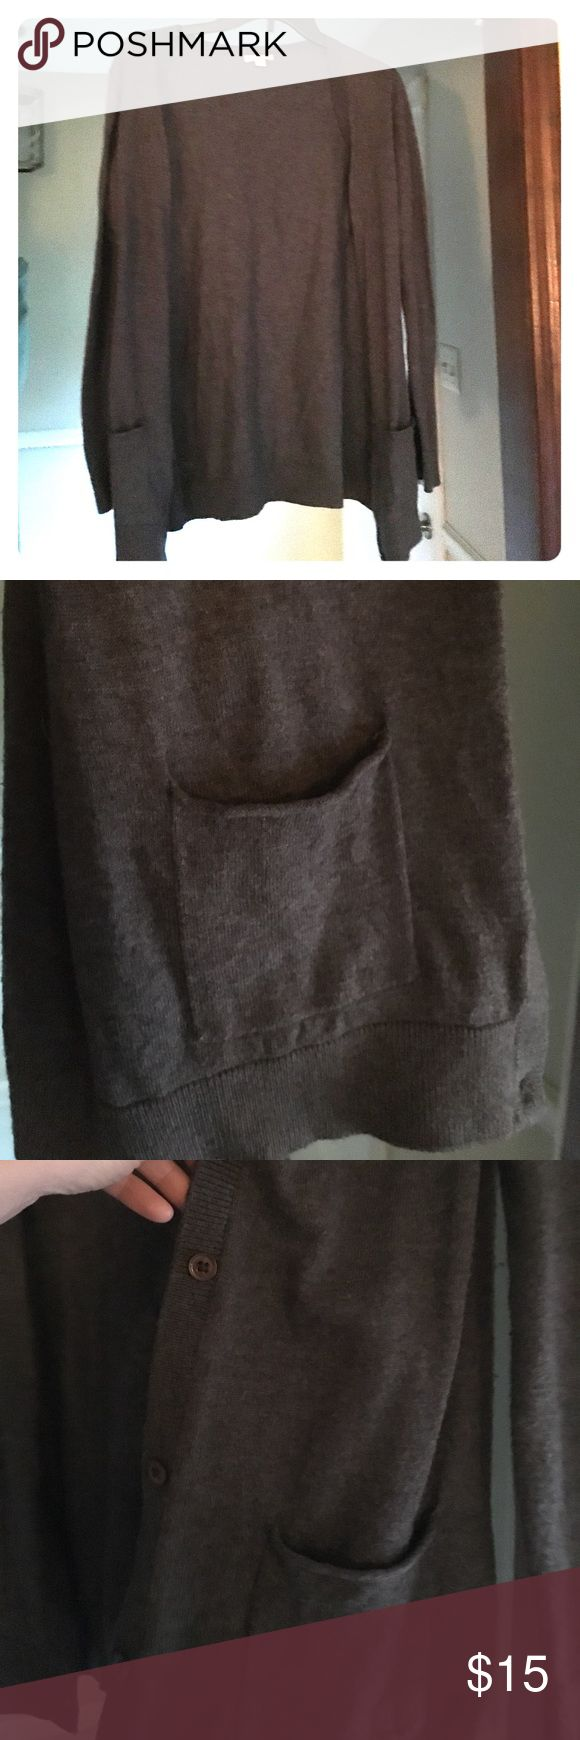 Cozy grey cardigan - GAP This dark gray cardigan has adorable pockets. Button closure. Warm and comfy. Excellent used condition. GAP Sweaters Cardigans